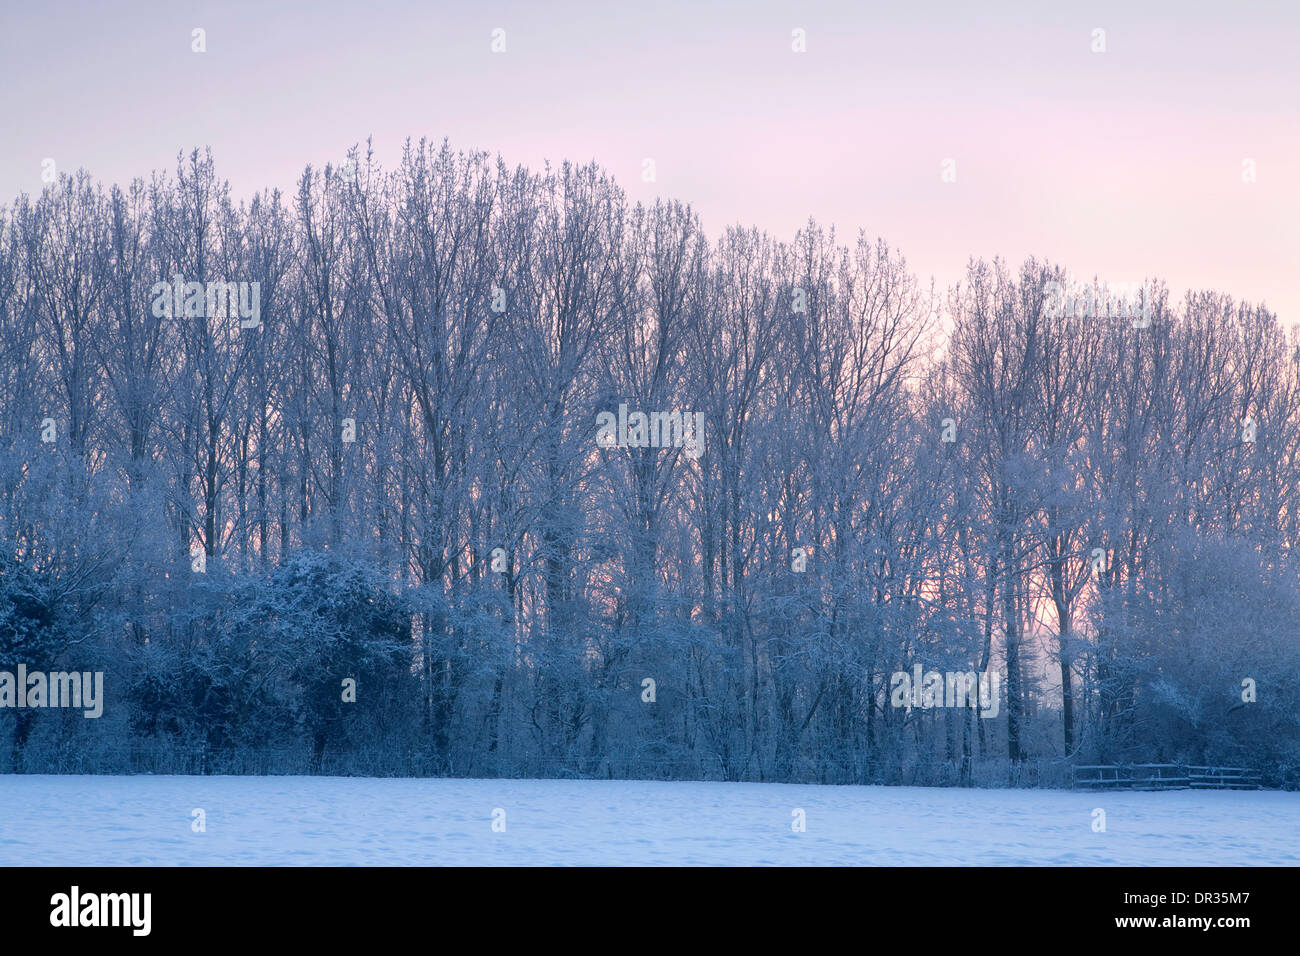 A line of poplar trees are covered in a dusting of snow while the sun sets in the background. Stock Photo